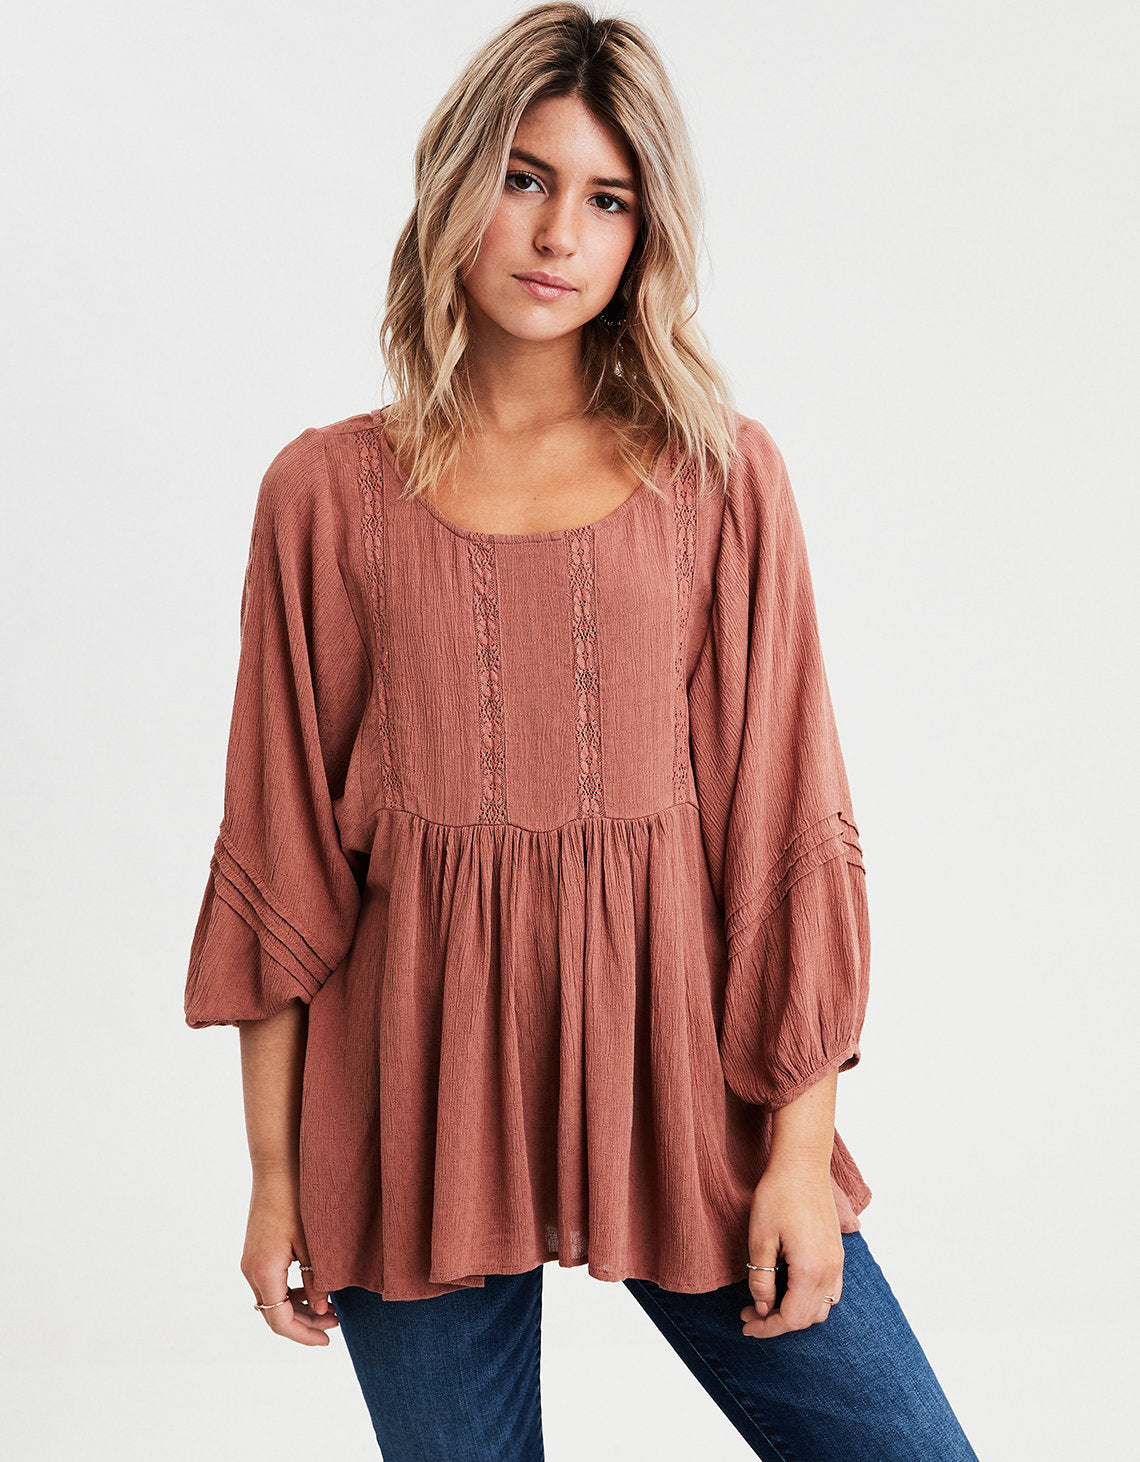 c44e3e1b9aad American Eagle | AE Long Sleeve Lace Inset Tunic in Brown | American ...